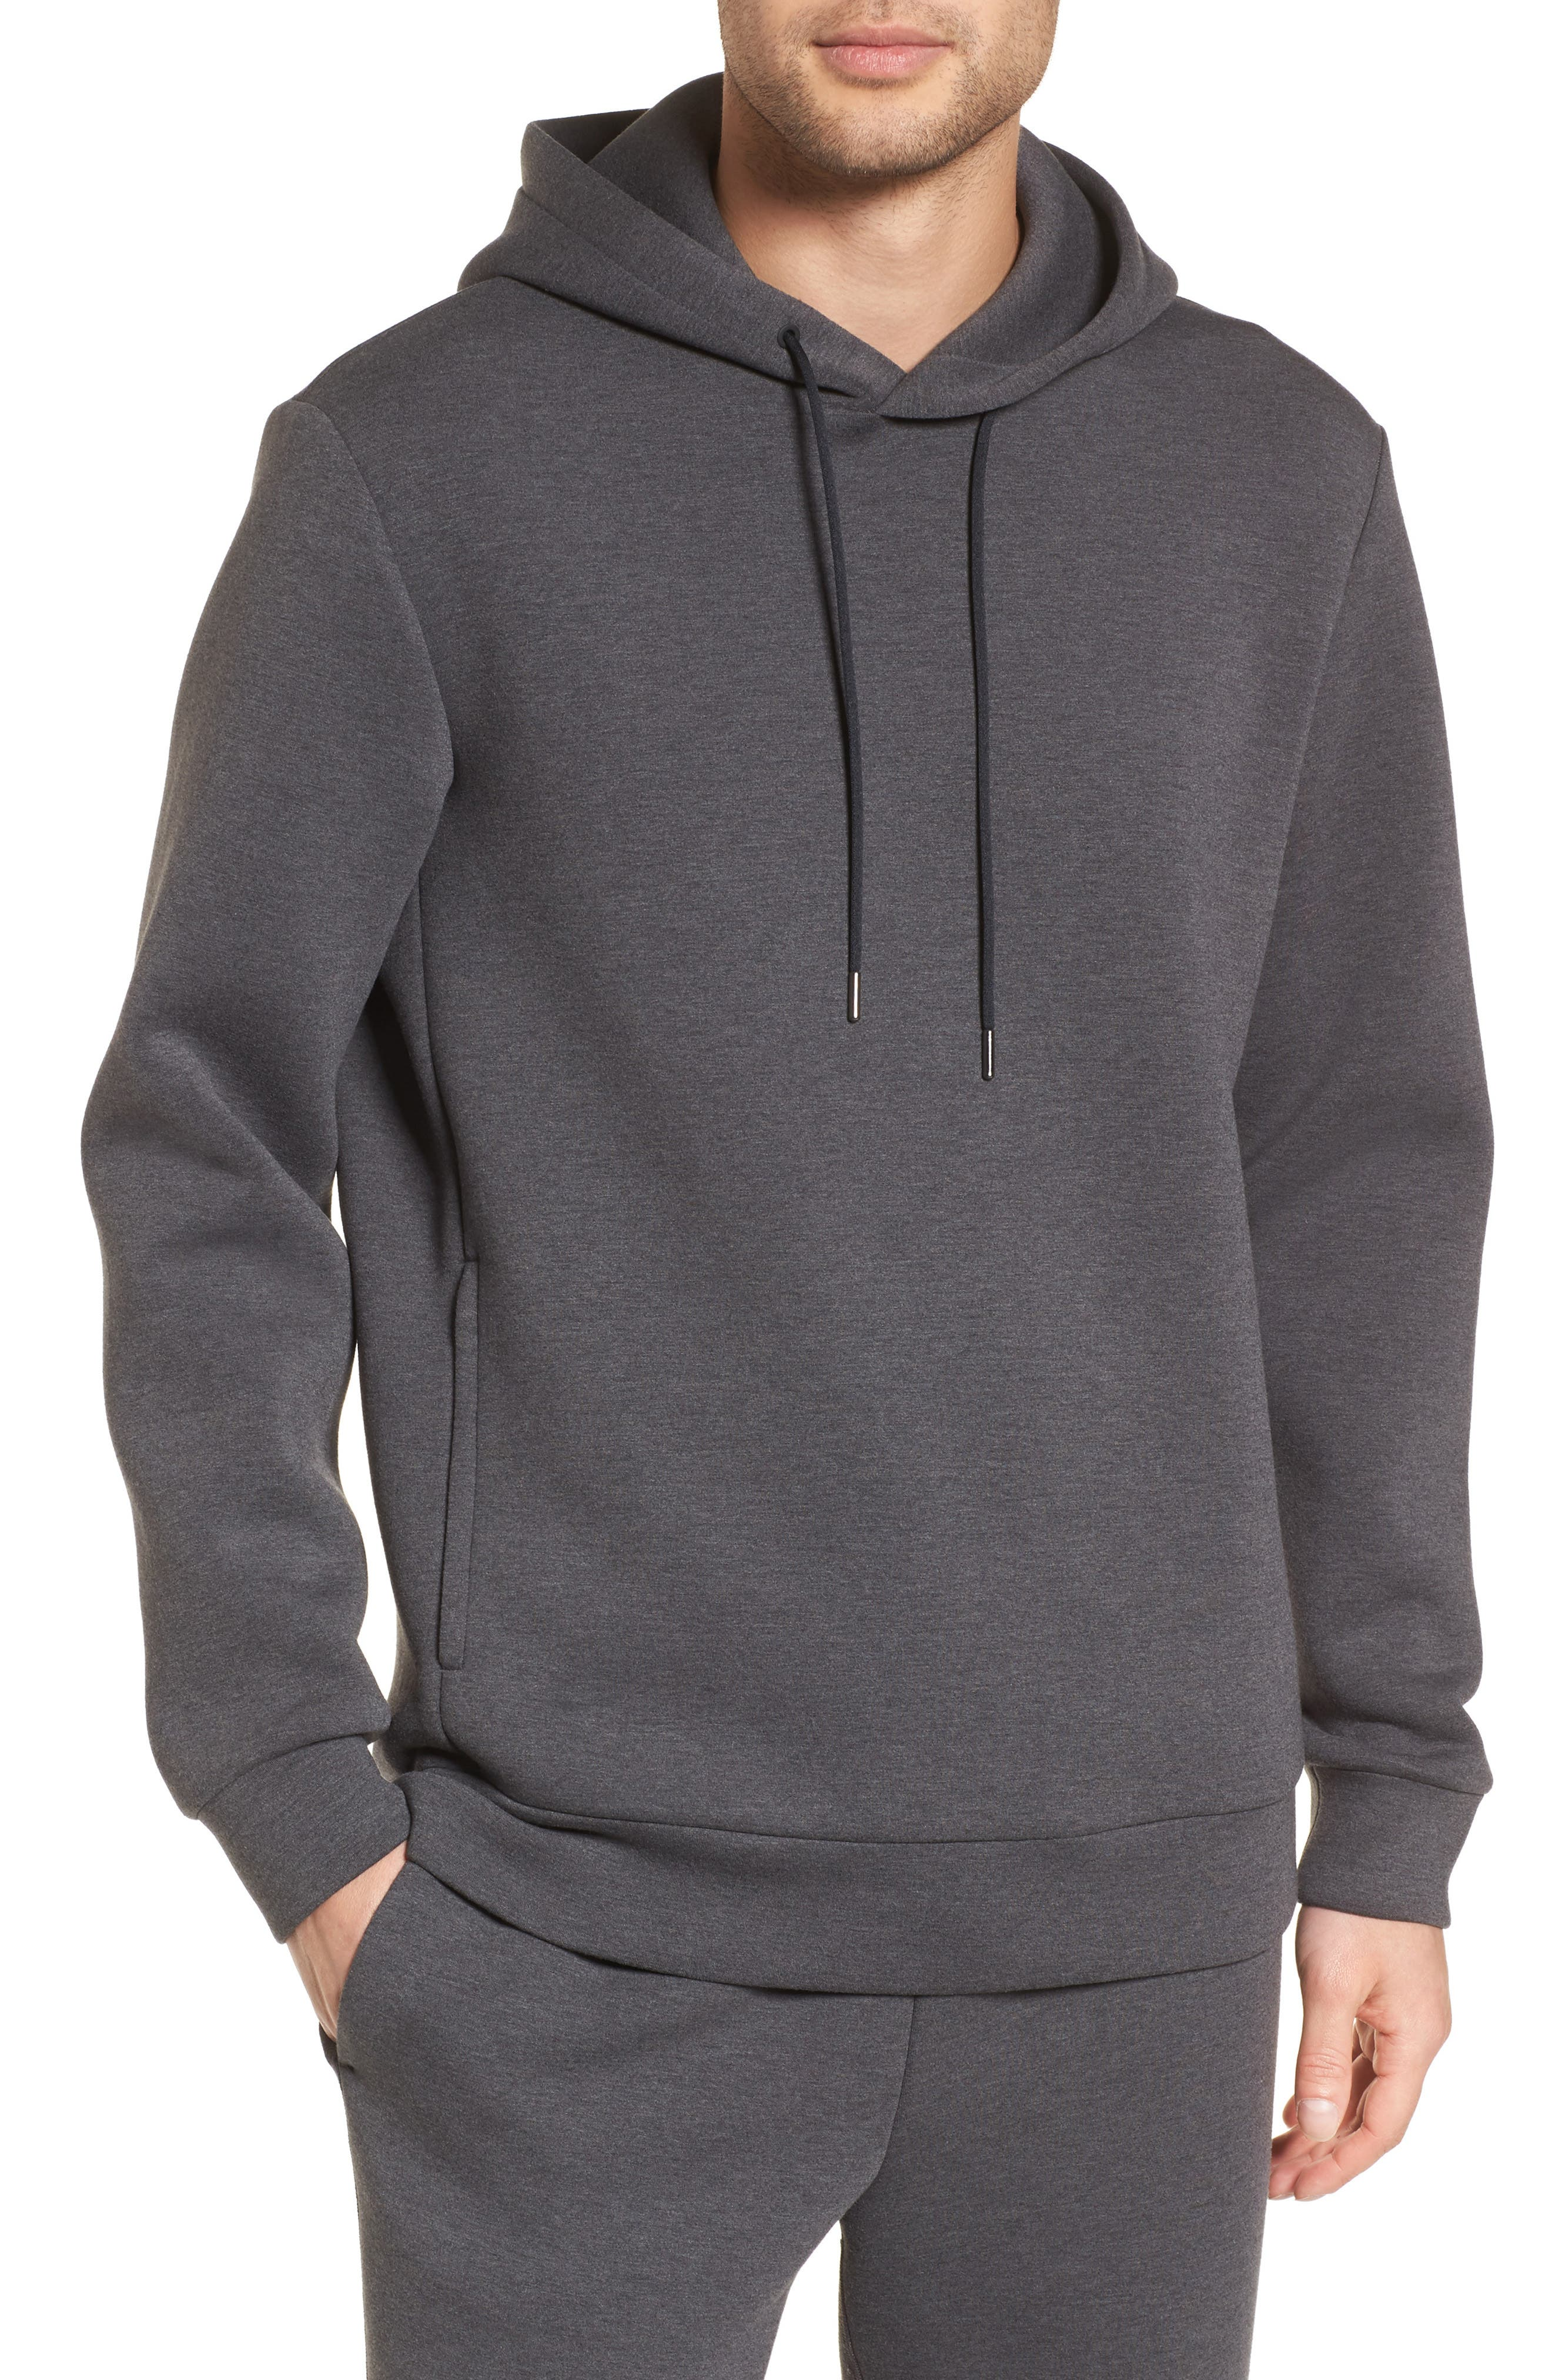 Scuba Pullover Hoodie,                         Main,                         color, Charcoal Heather